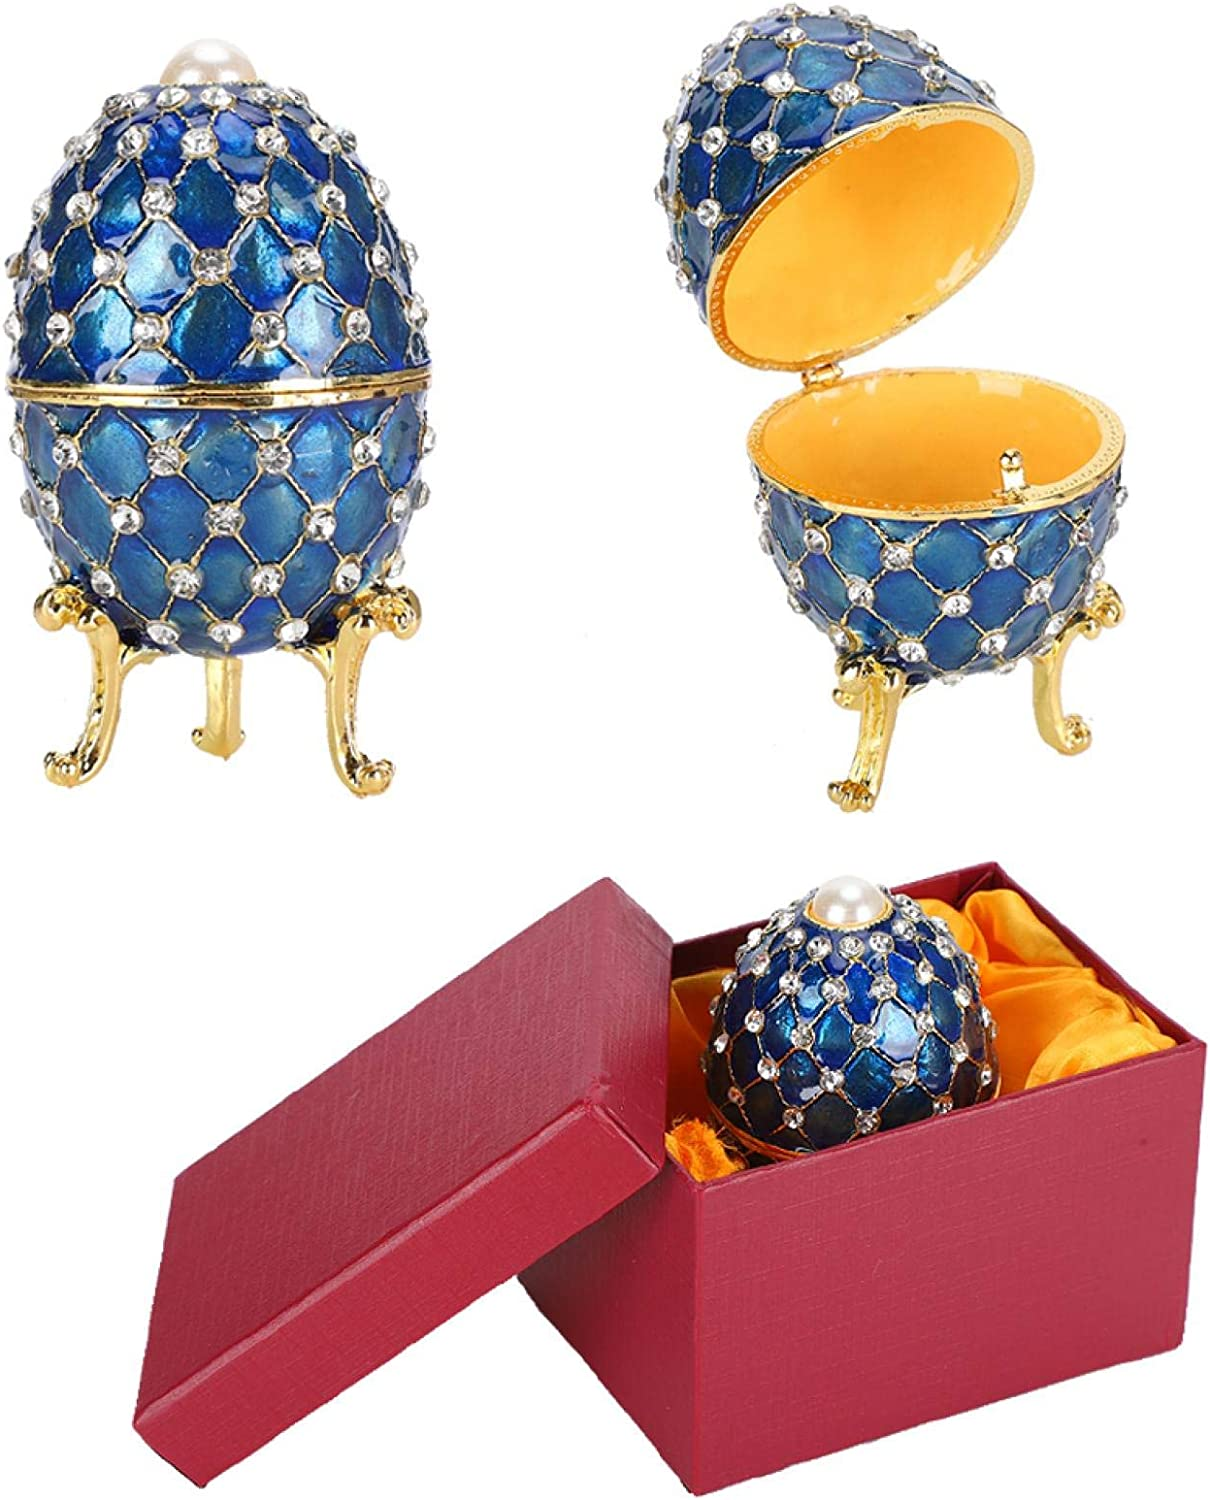 Home Ranking TOP19 Decor Crafts Strong Practicality Egg Enameled Shi Set Ranking TOP14 Hand